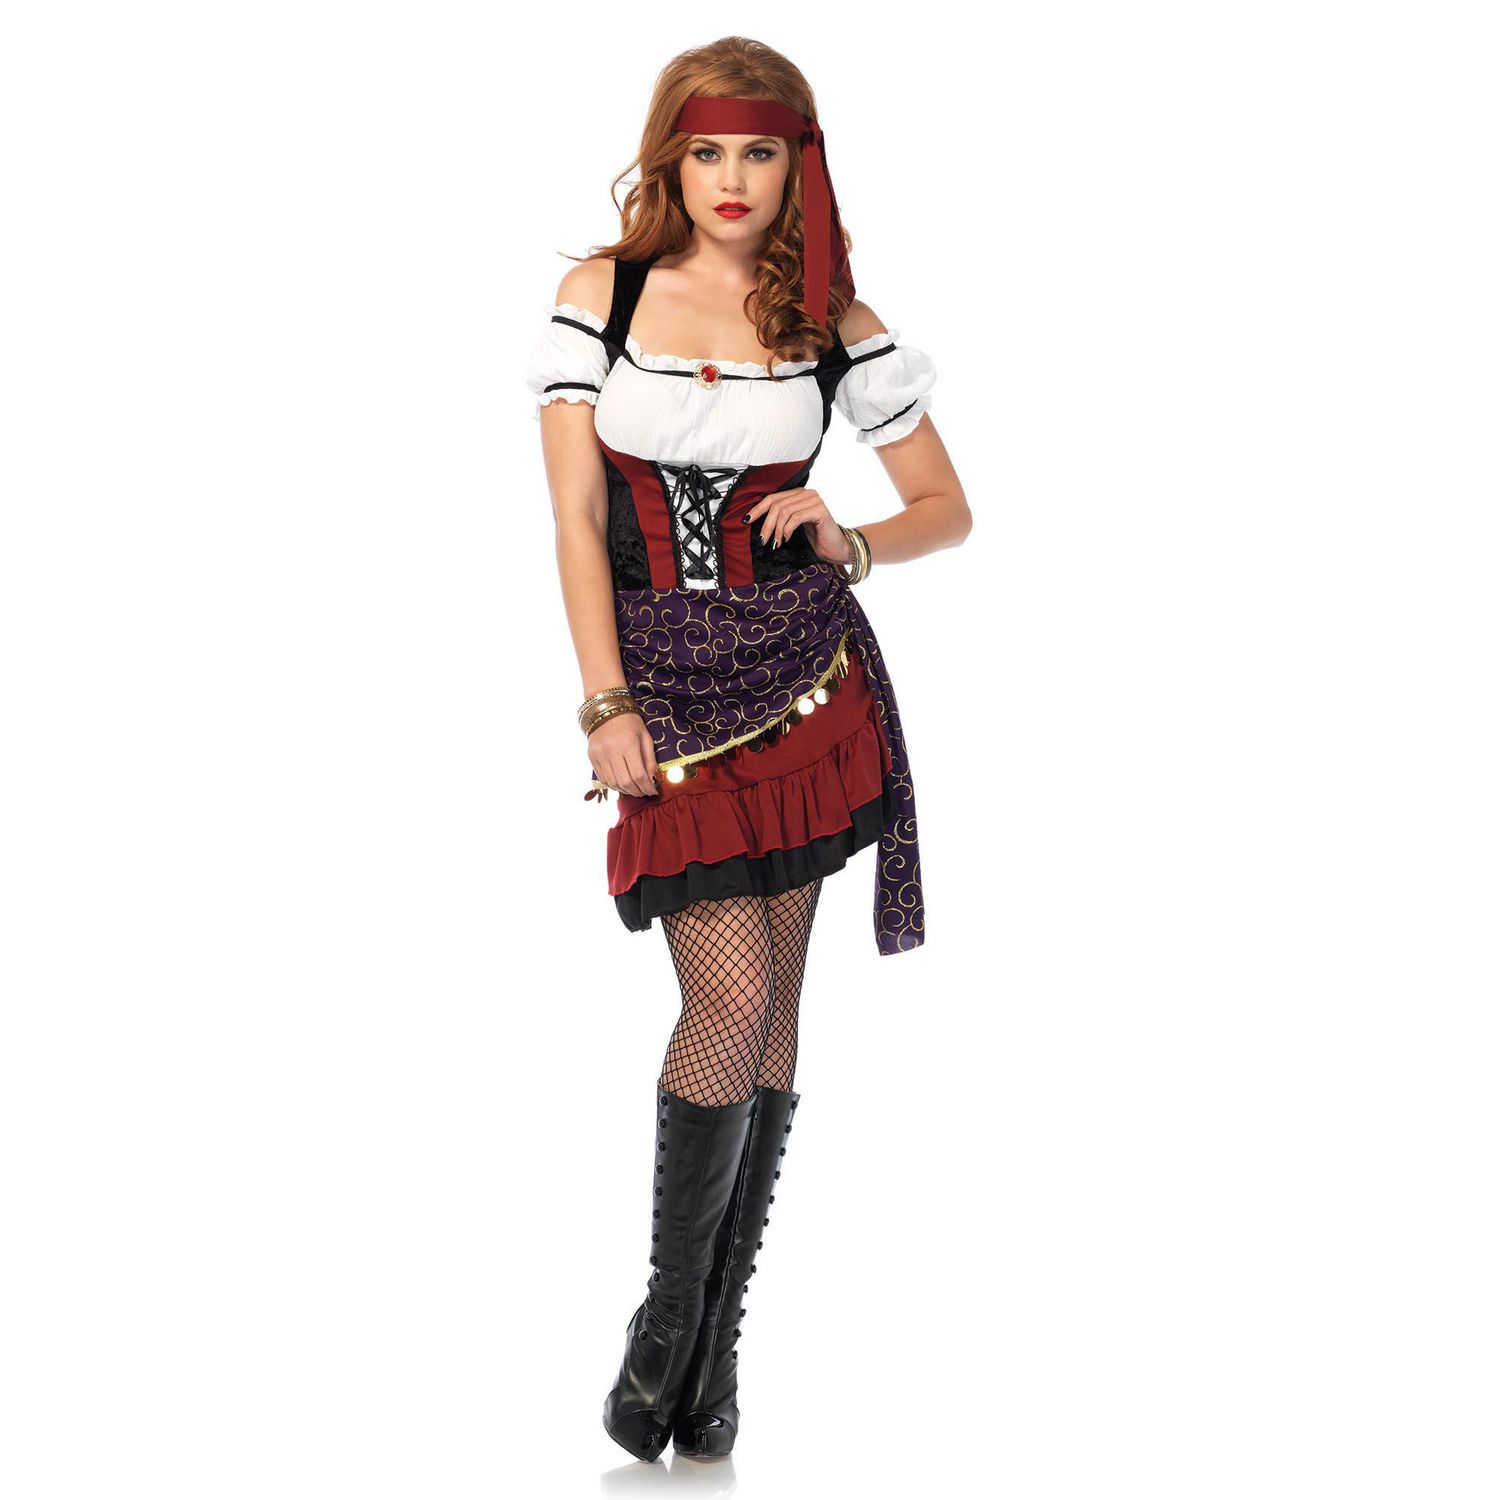 Wonderland Moonlight Gypsy Womens Sexy Halloween Costume  sc 1 st  Connecting Info by tpschina.org in 2018 & 91+ Gypsy Costume Walmart - Gypsy Cutie Child Halloween Costume ...